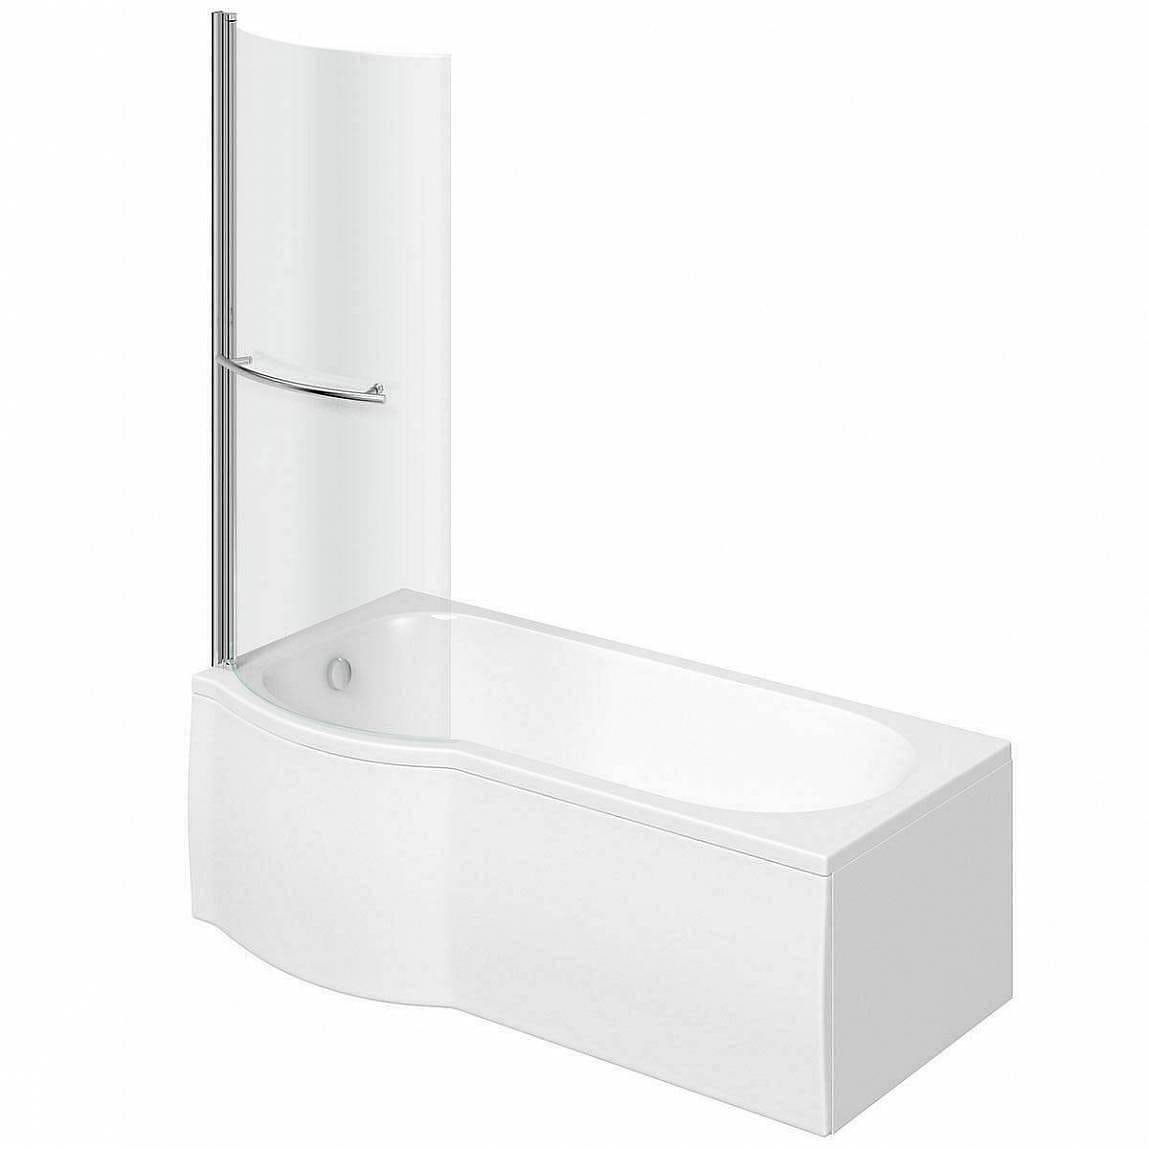 Orchard P Shaped Left Handed Shower Bath 1675mm With 6mm